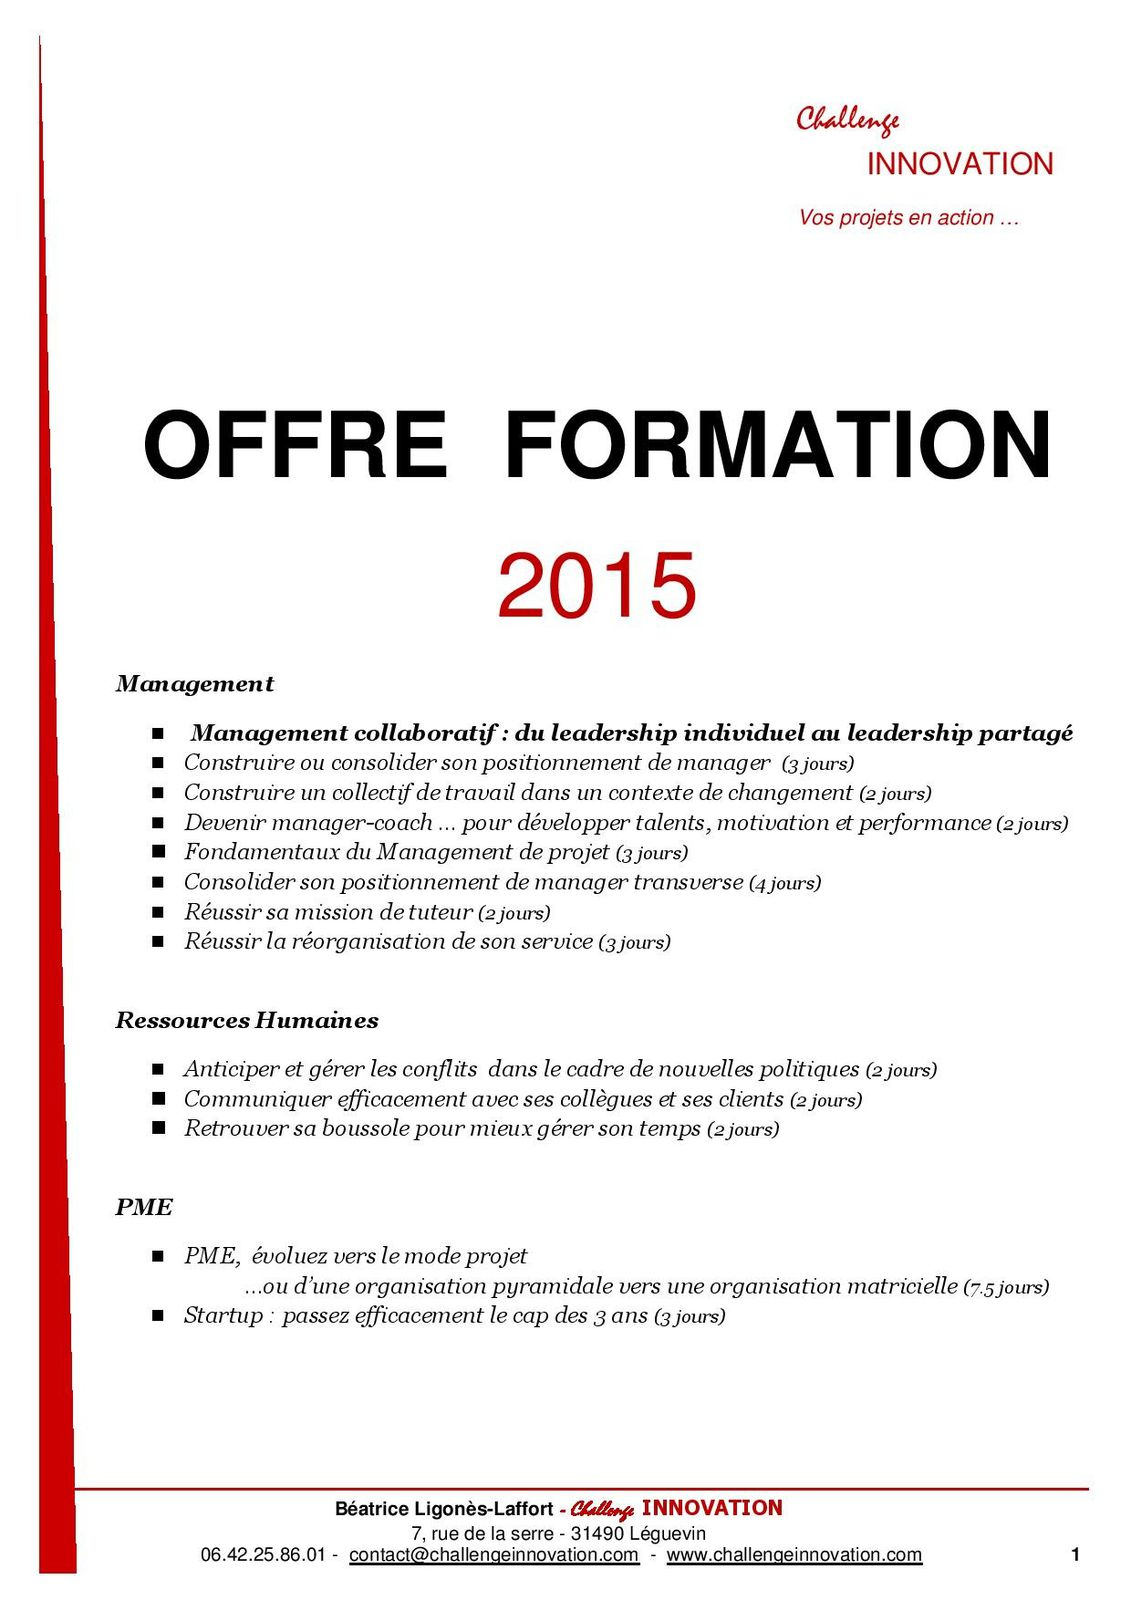 FormationsChallengeInnovation2015liste-page-001